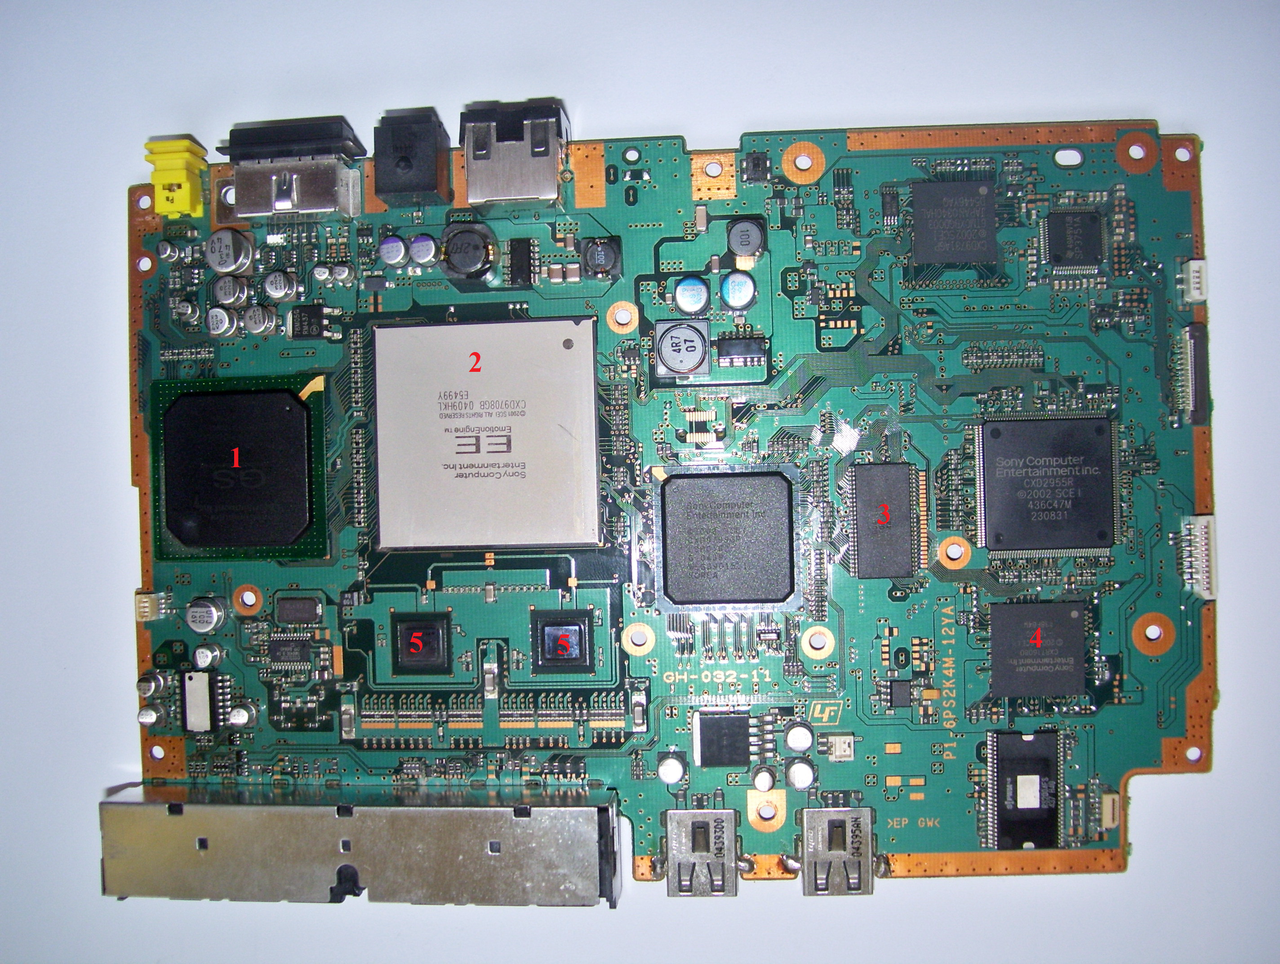 Fileplaystation 2 slims motherboard top 2g wikimedia commons fileplaystation 2 slims motherboard top 2g pooptronica Choice Image